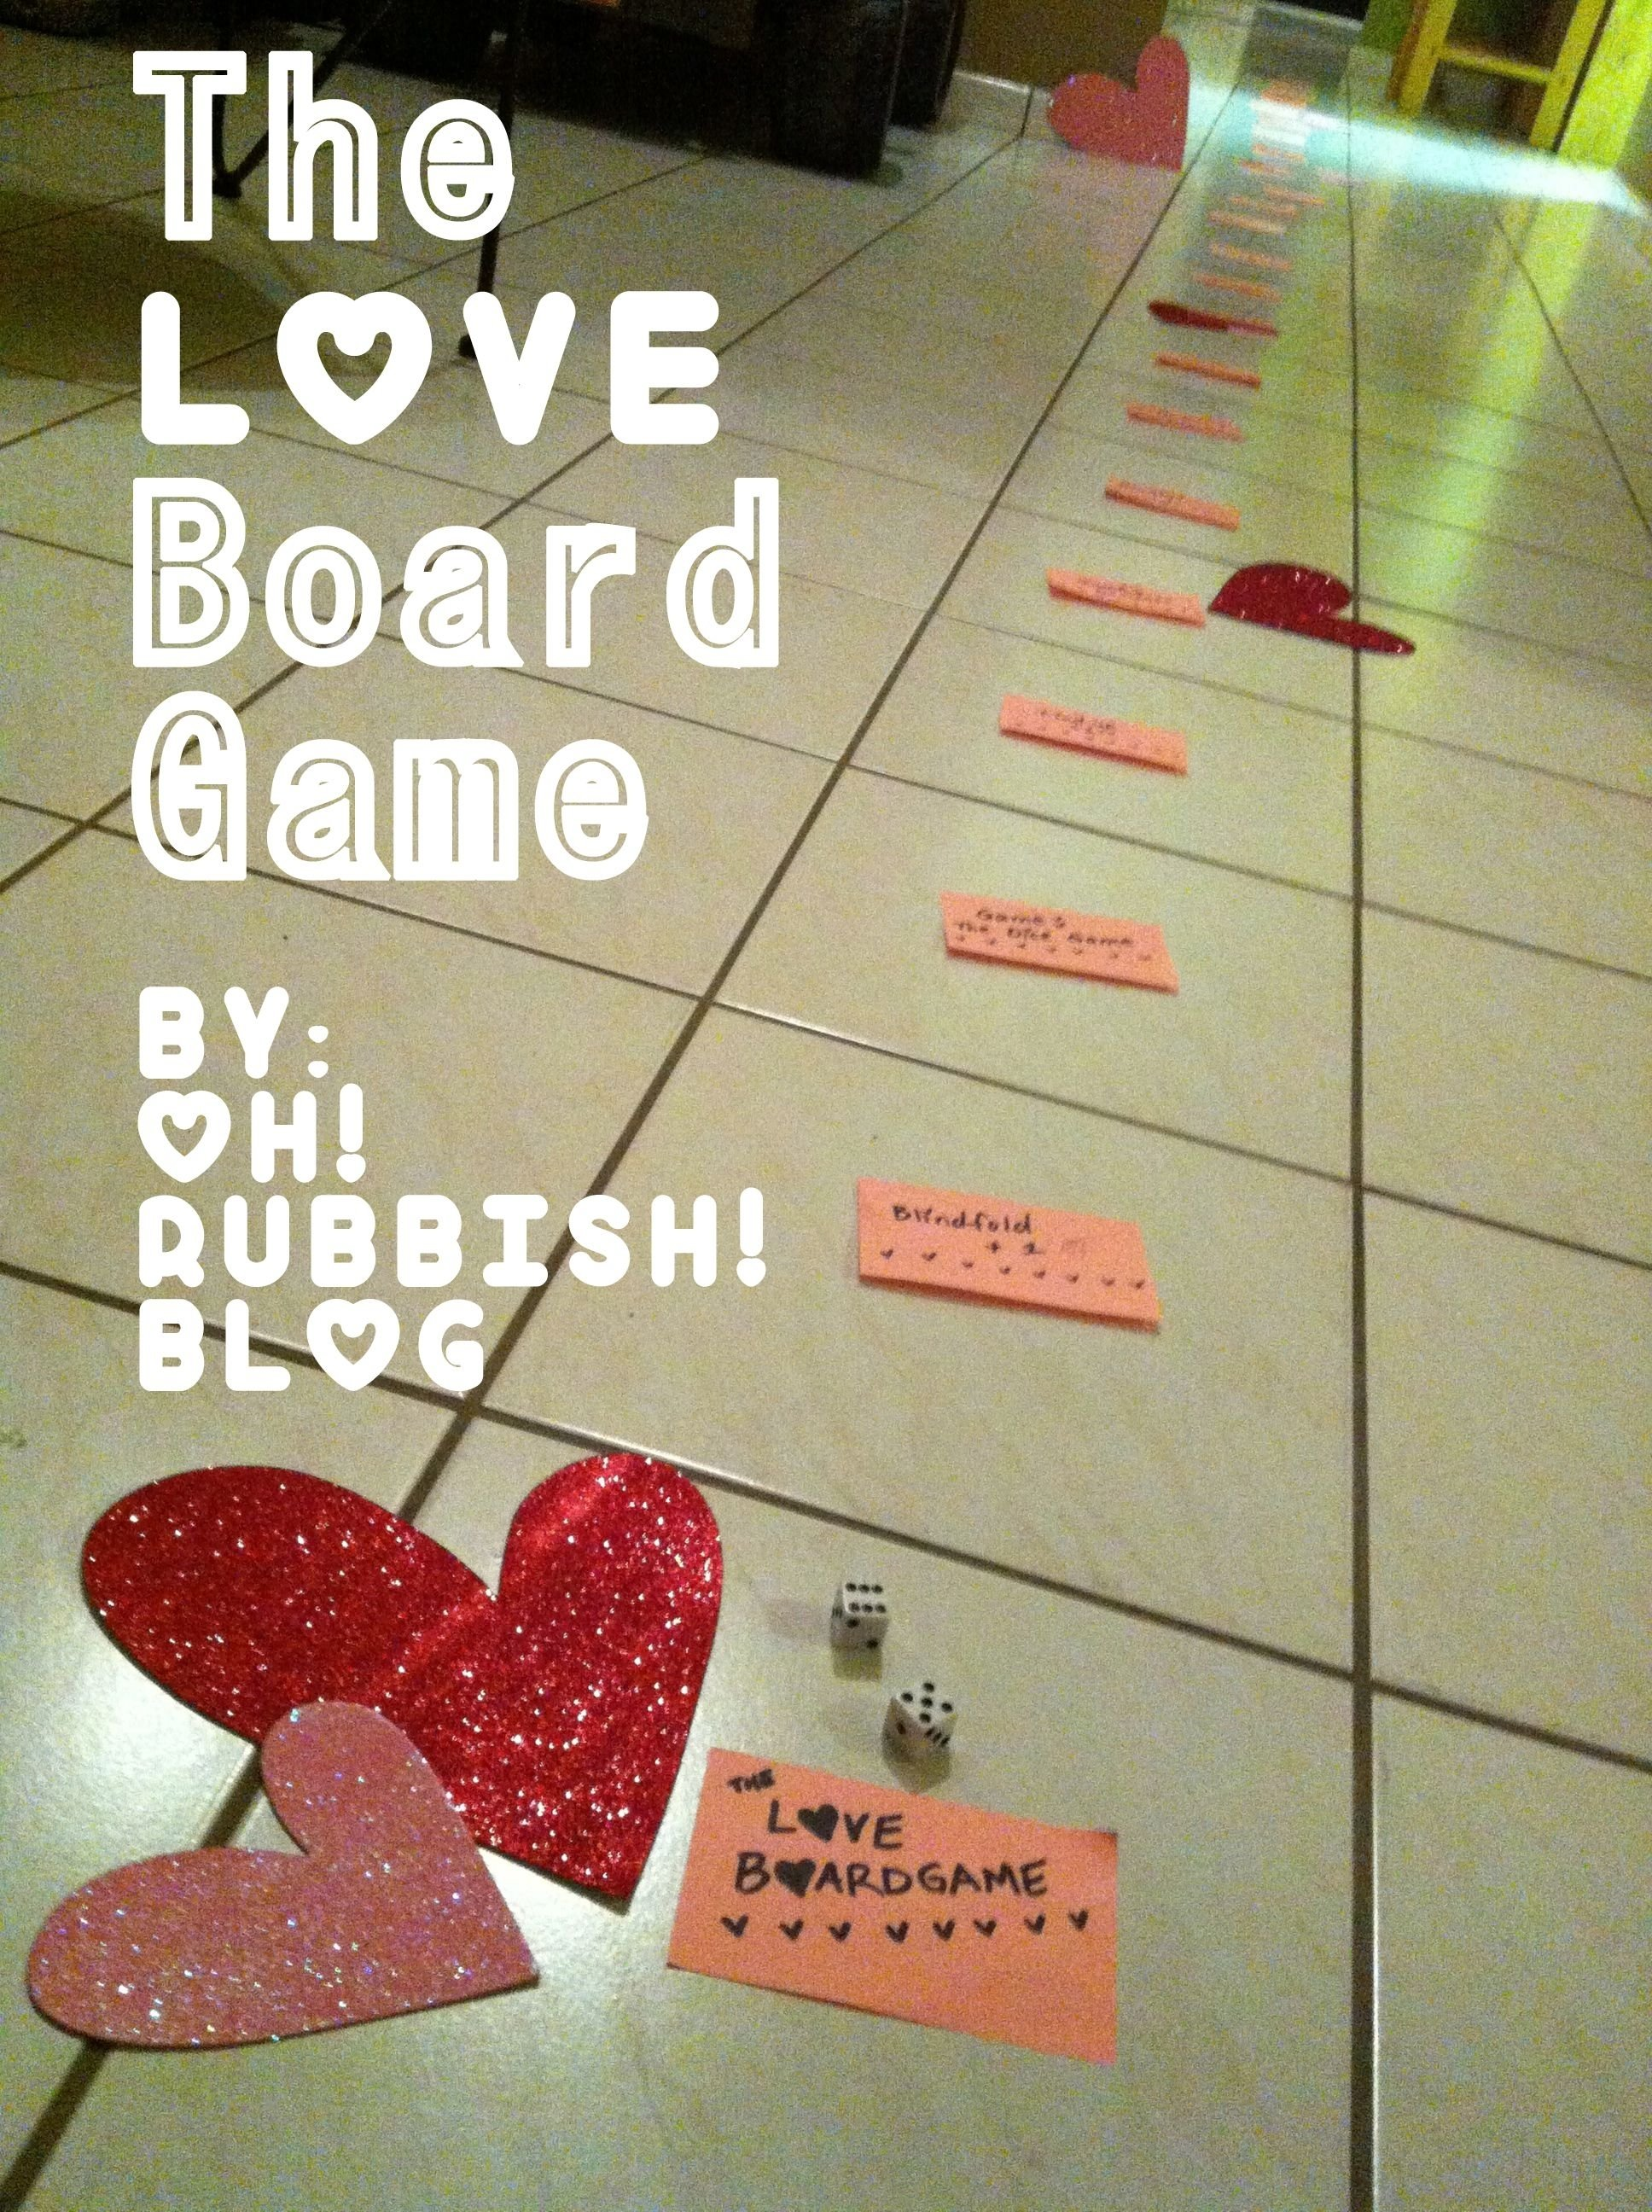 10 Most Recommended Great Valentines Day Ideas For Him the love board game valentine game for couples valentine day 6 2020